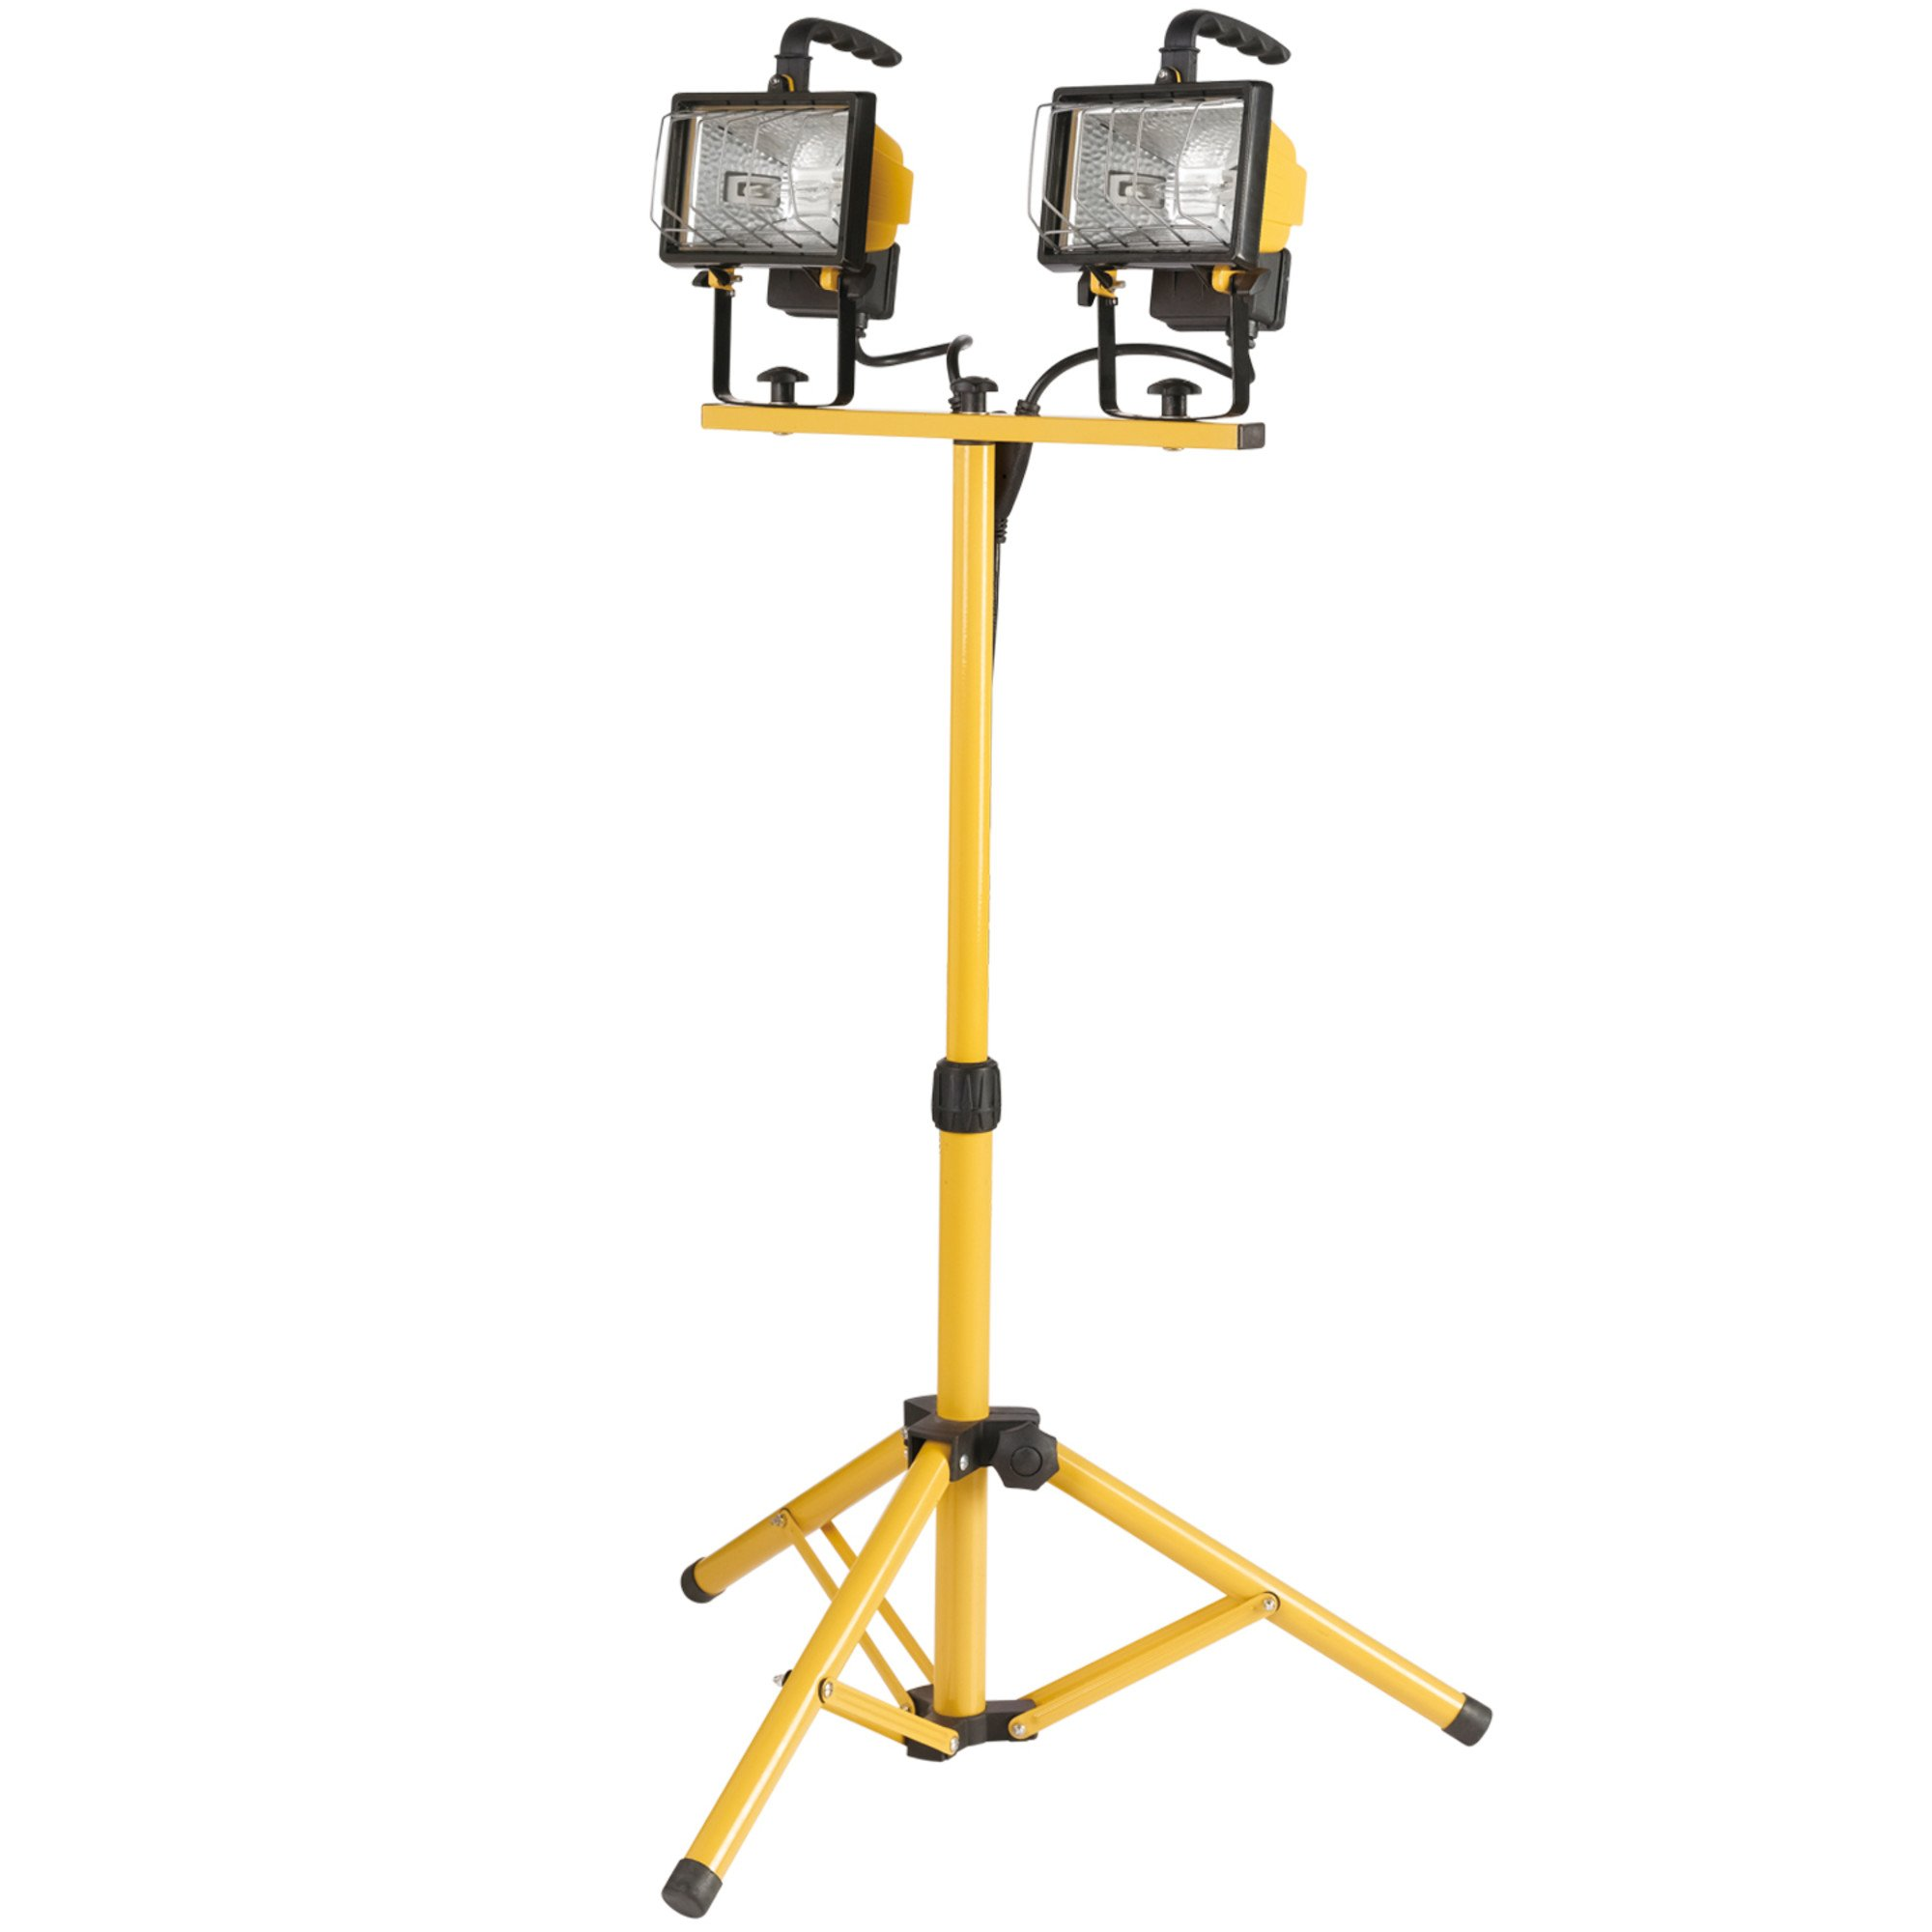 Globe Electric 500W Twin-Head Halogen Work Light, Yellow Finish, Adjustable Tripod, Bulbs Included, 6055701